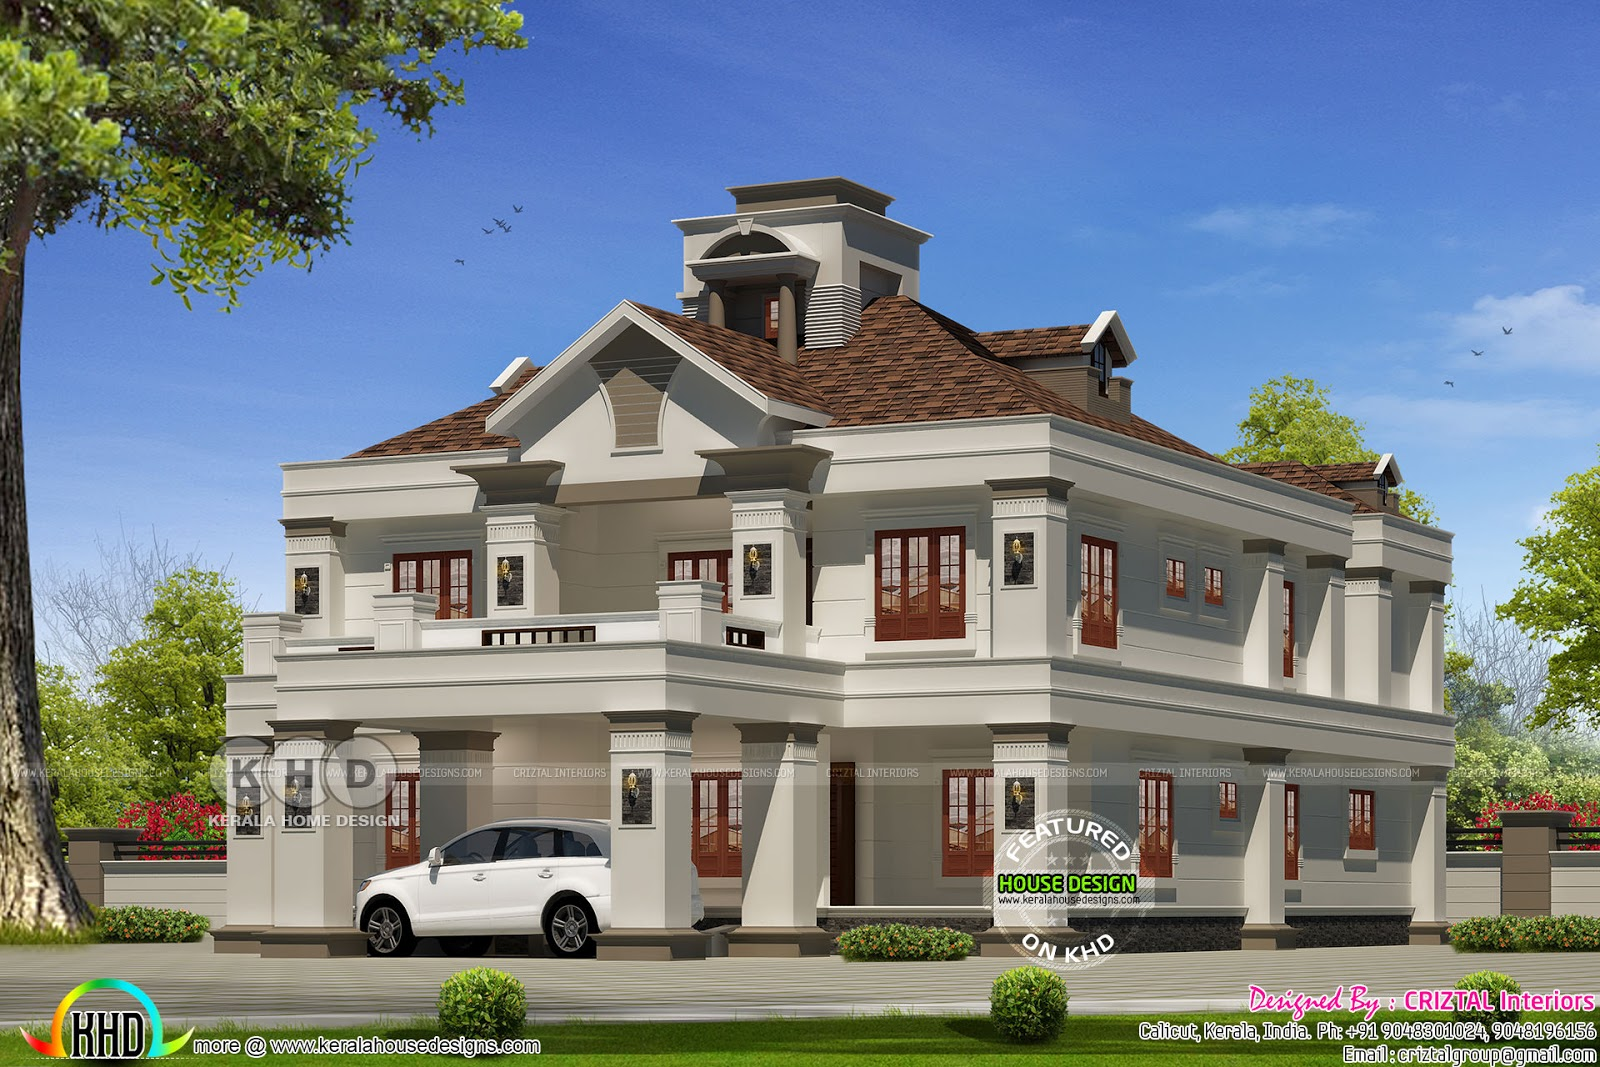 5 bedroom colonial model luxury house kerala home design for Colonial luxury house plans